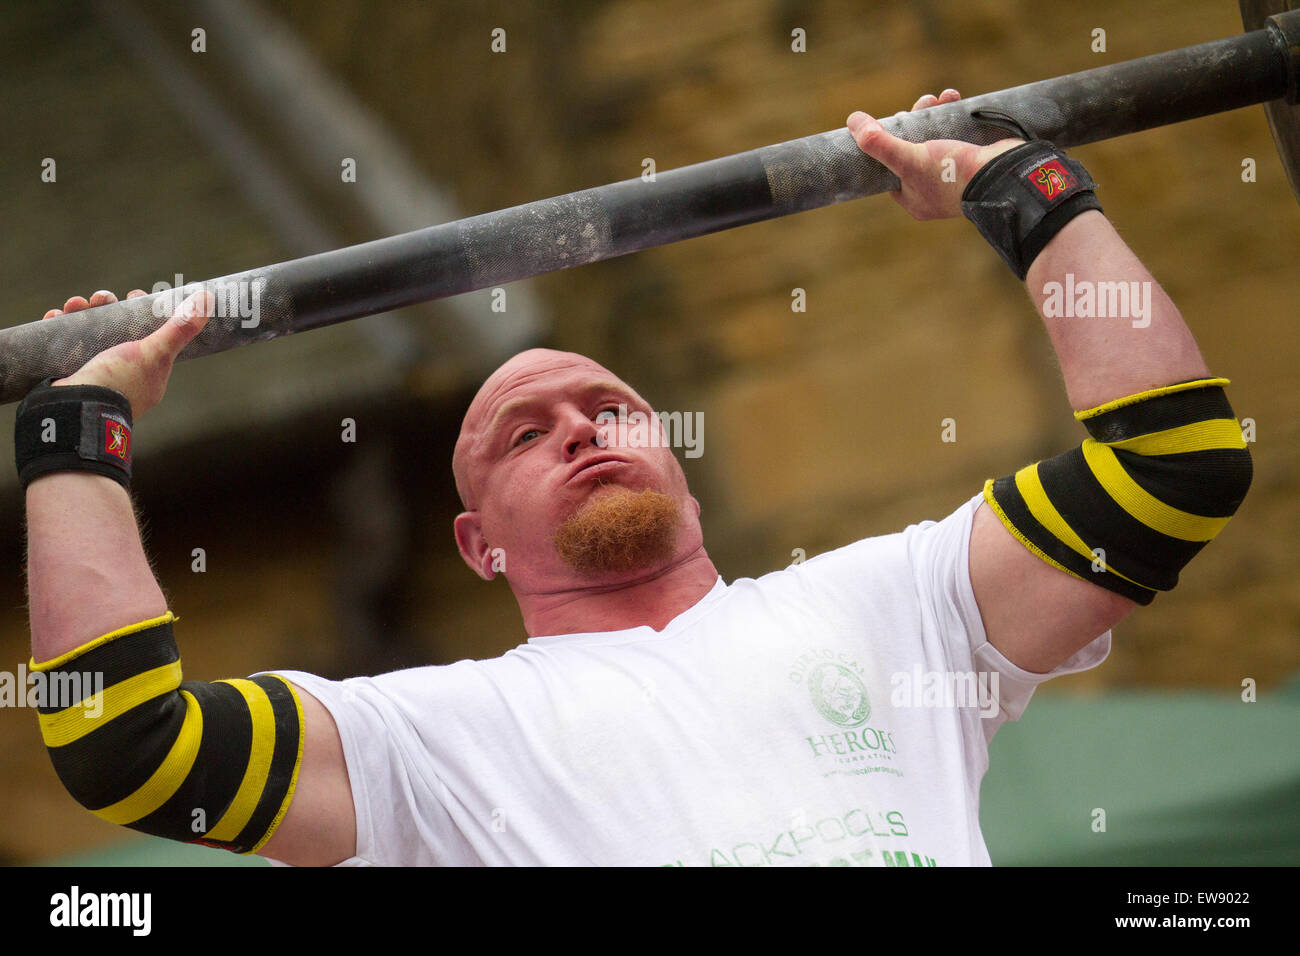 Jaw Muscle Stockfotos & Jaw Muscle Bilder - Alamy